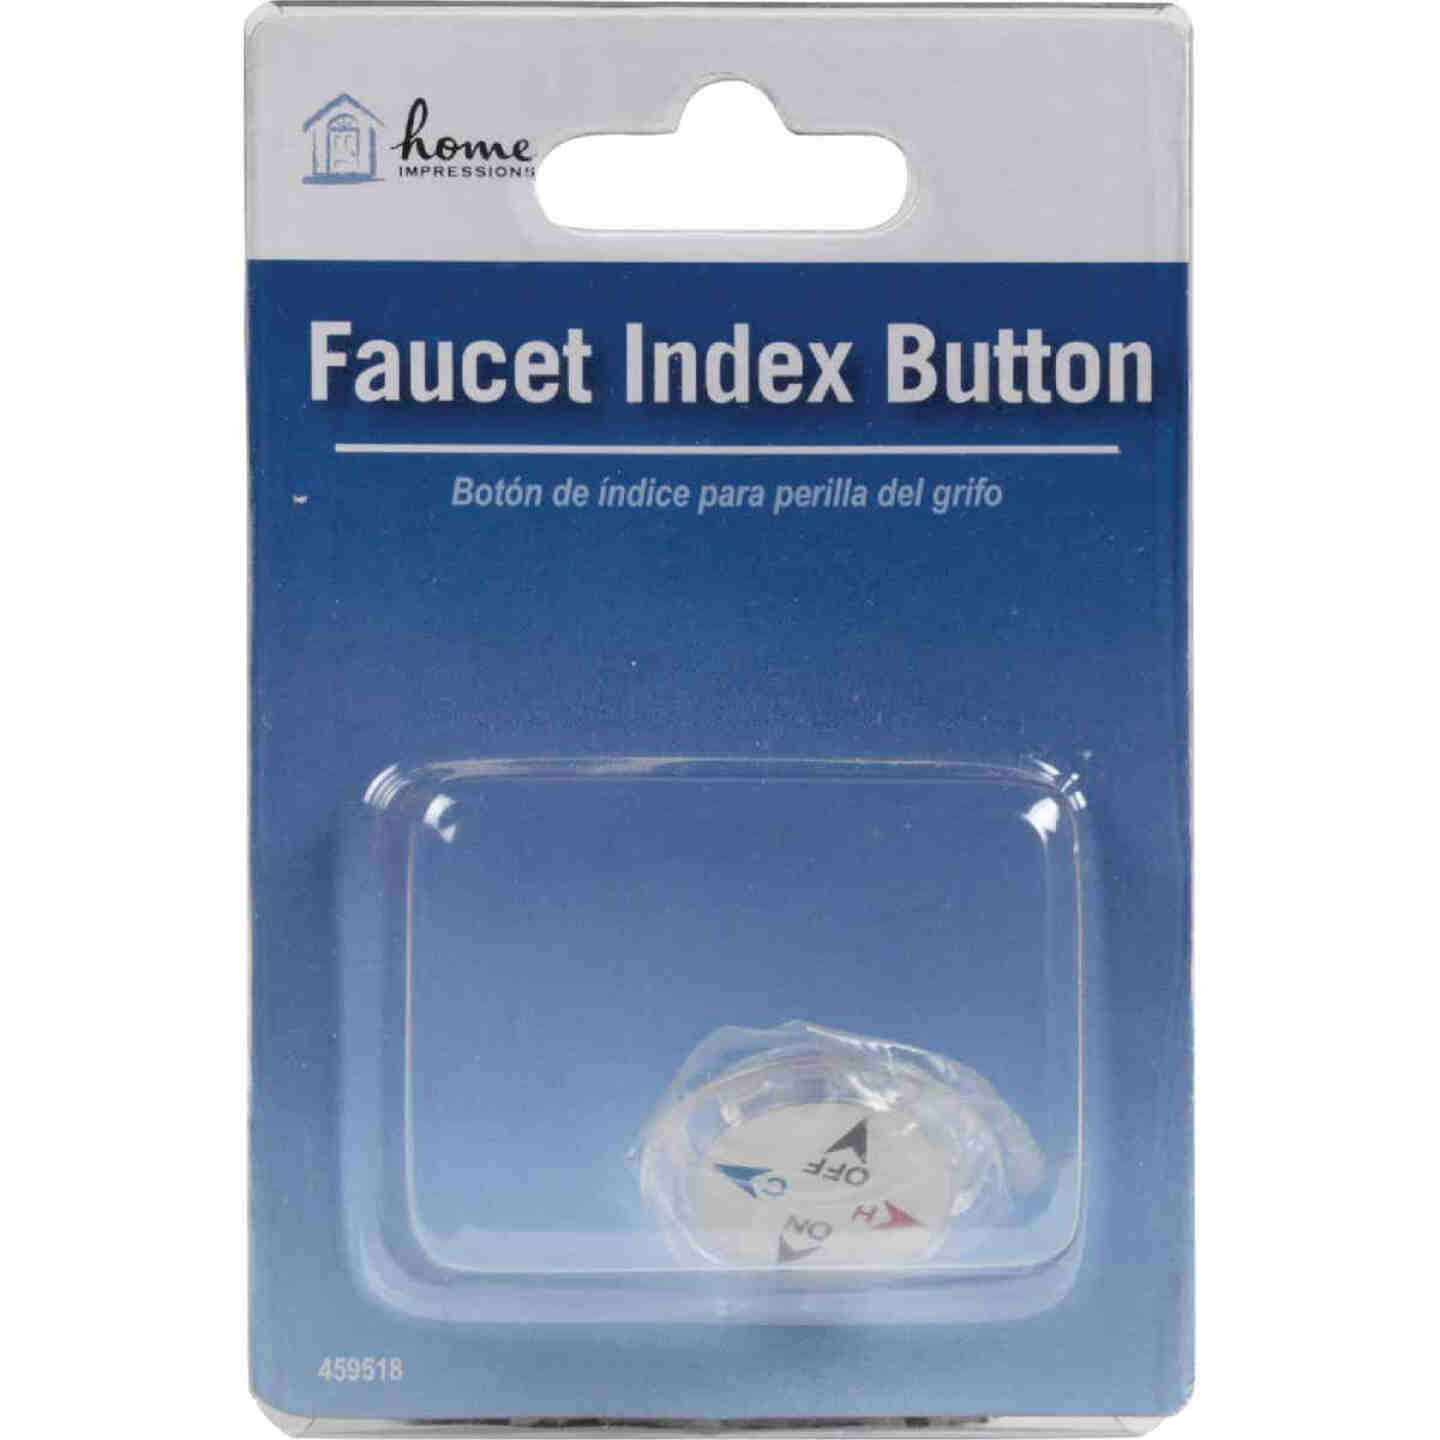 Home Impressions Faucet Index Replacement Handle Button Image 2